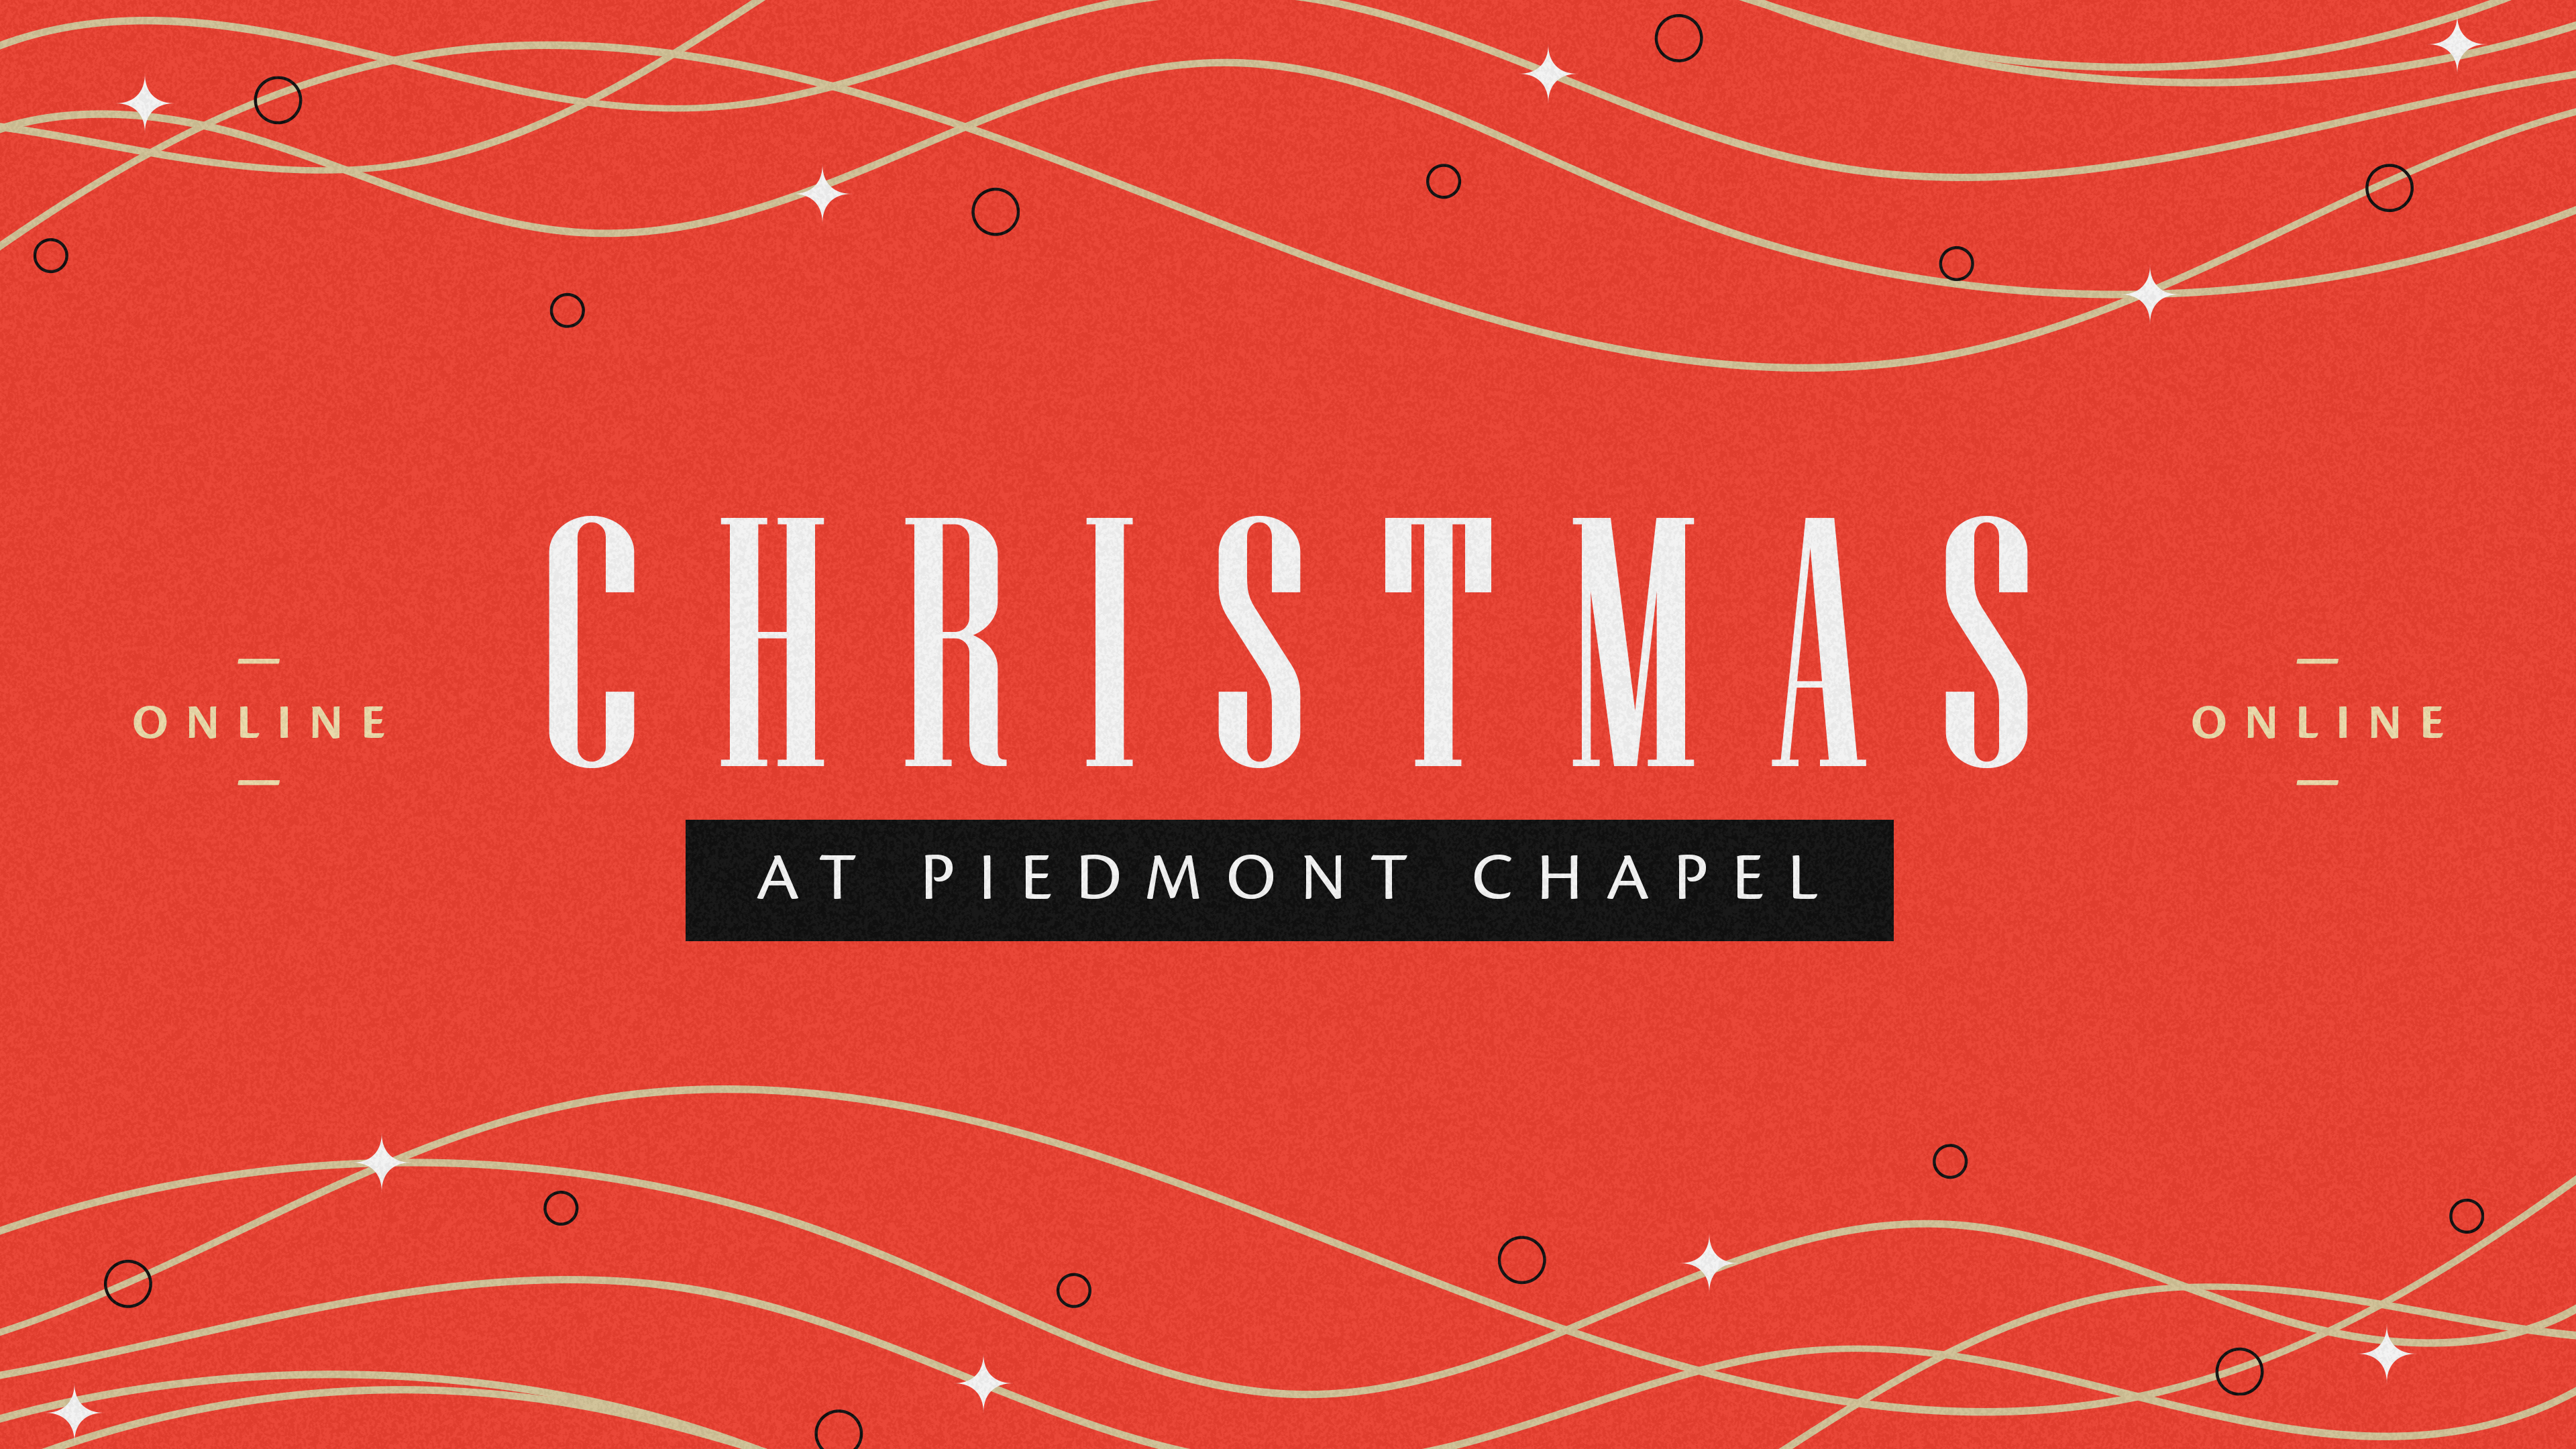 Christmas at Piedmont Chapel 2020